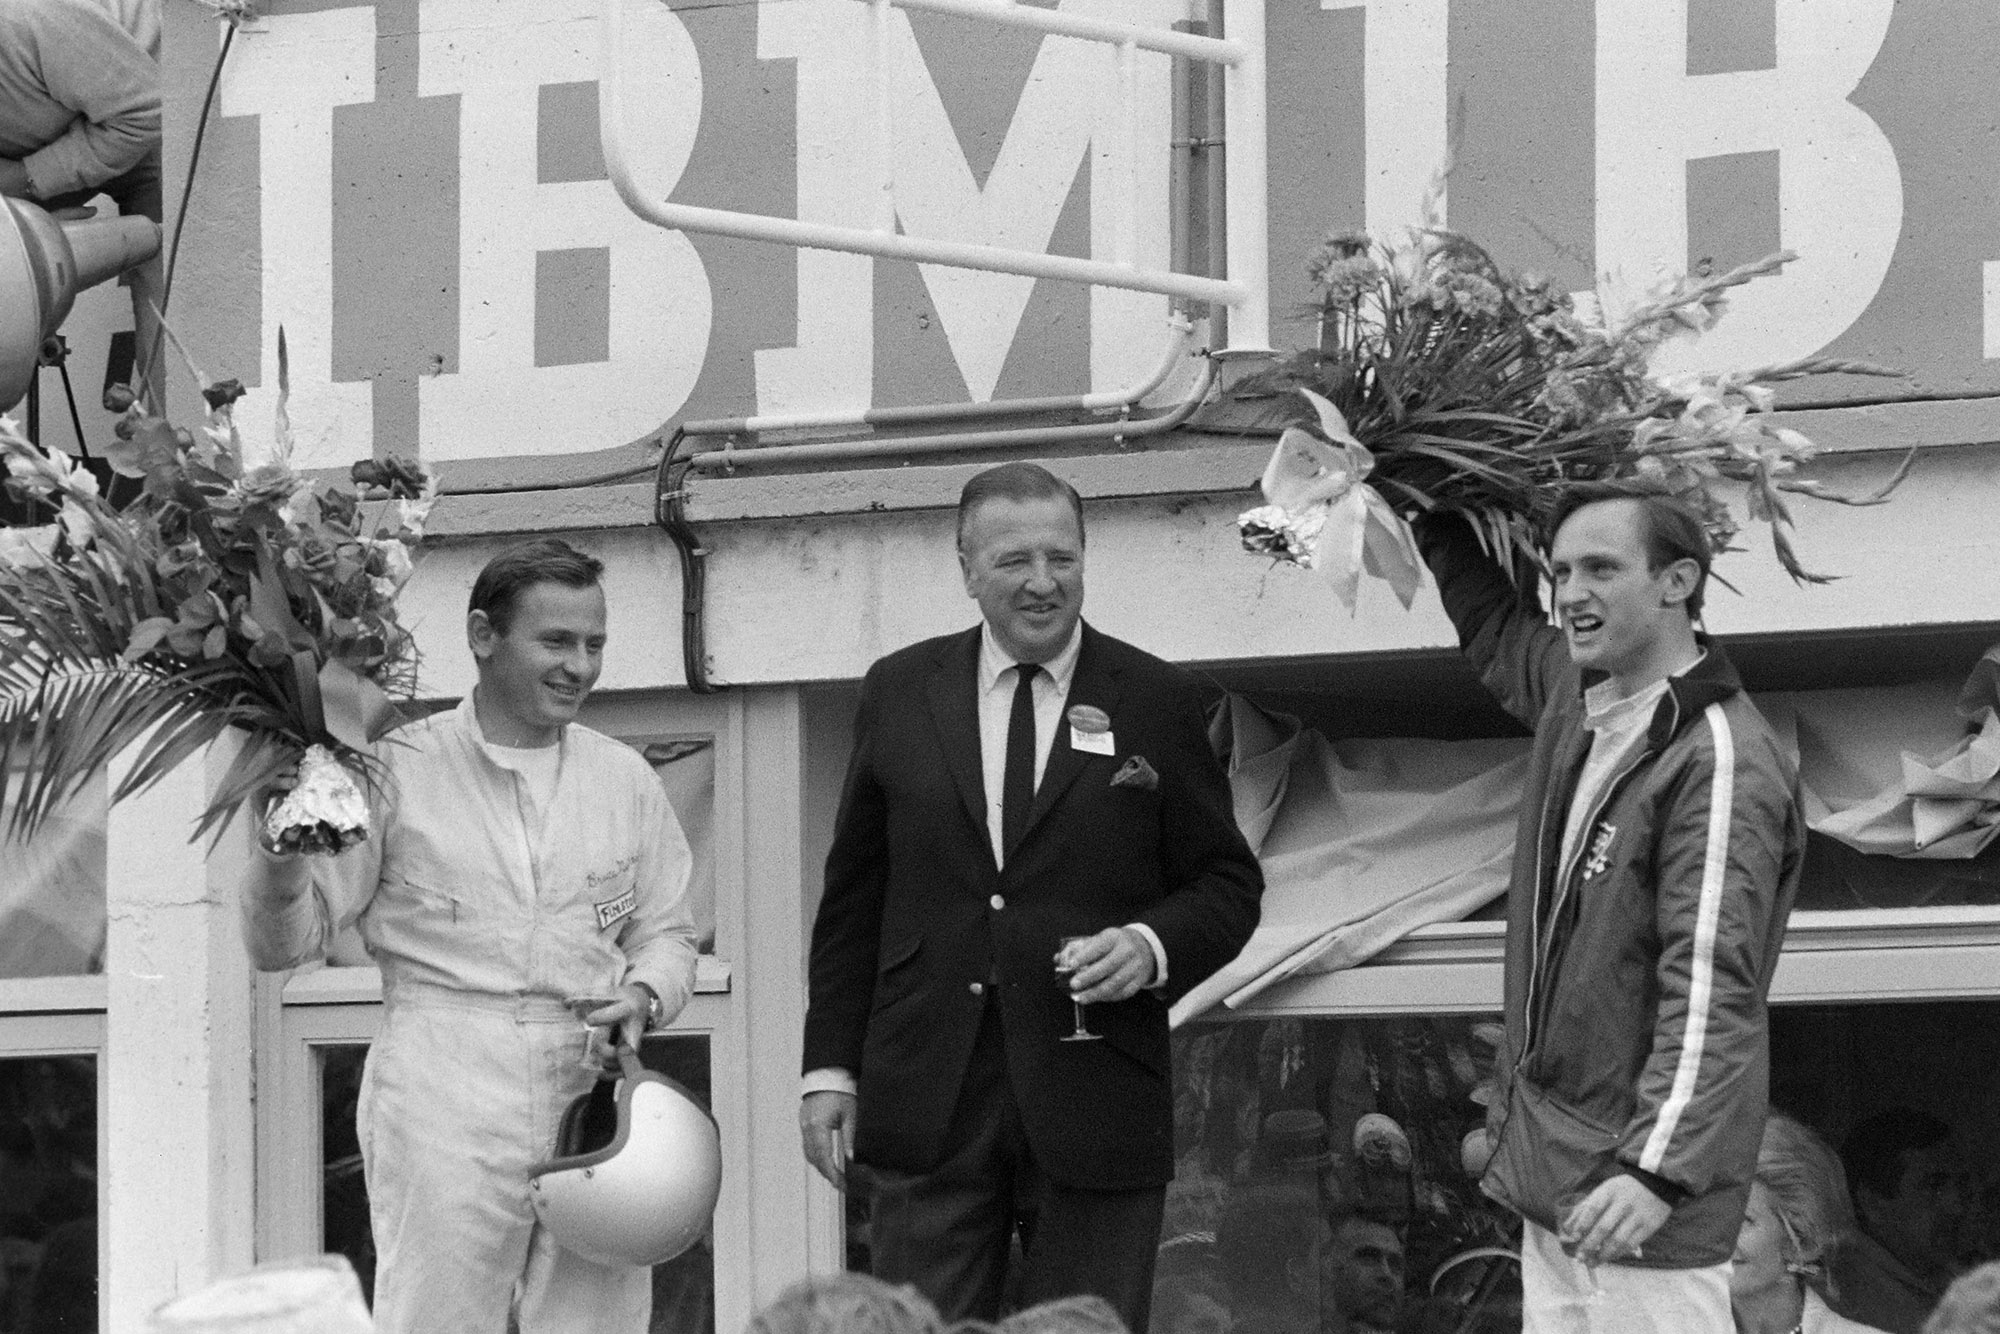 Henry Ford II stands on the podium alongside Bruce McLaren and Chris Amon